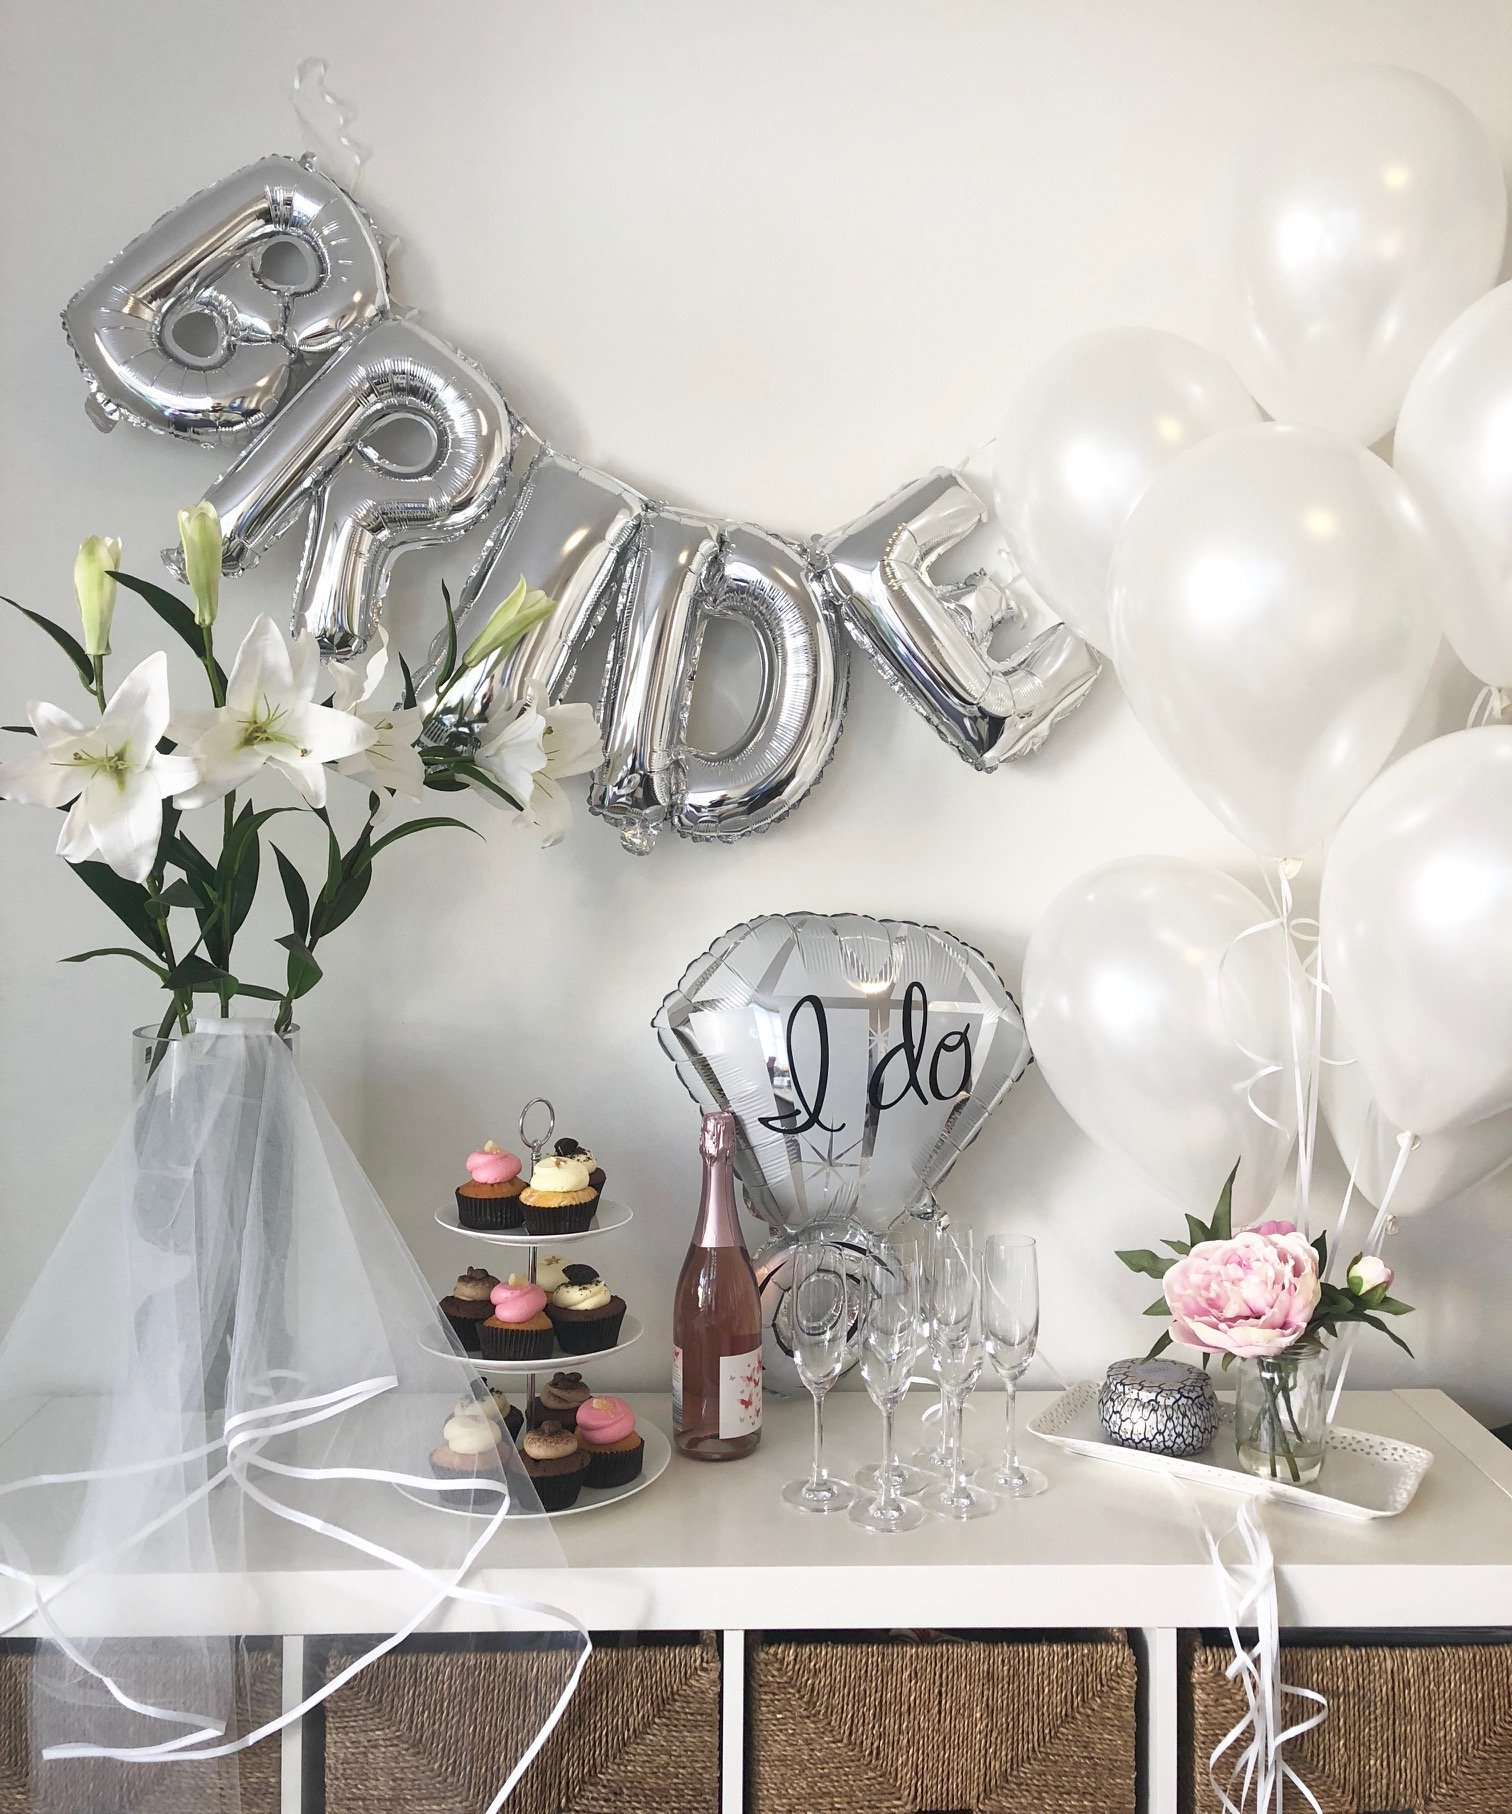 Silver & White Classy Hens Bachelorette KIT - 15 Piece Set: 8 Latex Balloons - 1 3D FOIL Banner Bride - 1 Satin Trimmed Veil - 1 Shiny Ring Balloon by JACA (Image #1)